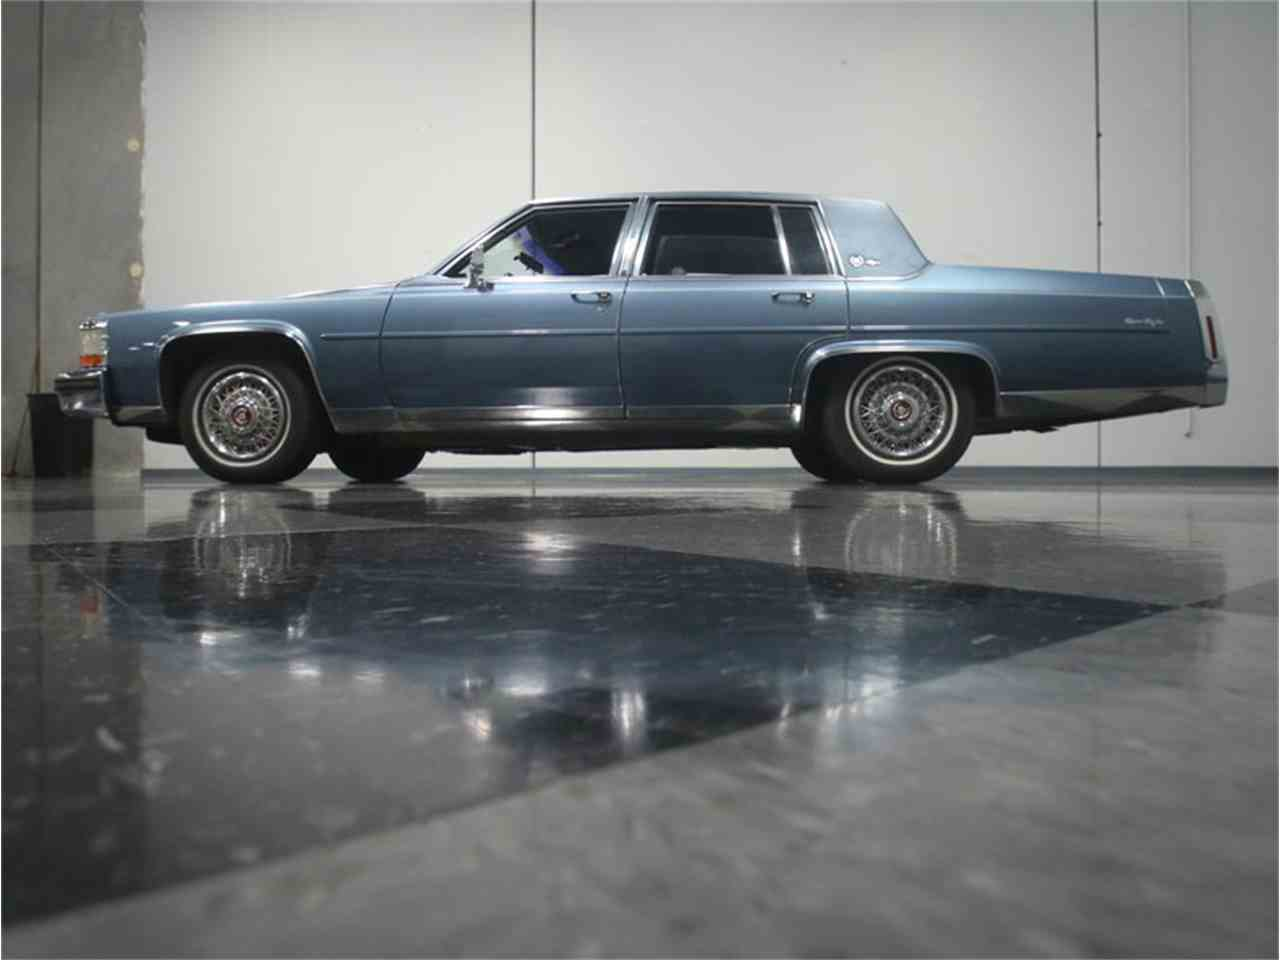 Large Picture of 1986 Fleetwood Brougham - $8,995.00 Offered by Streetside Classics - Atlanta - LHHW